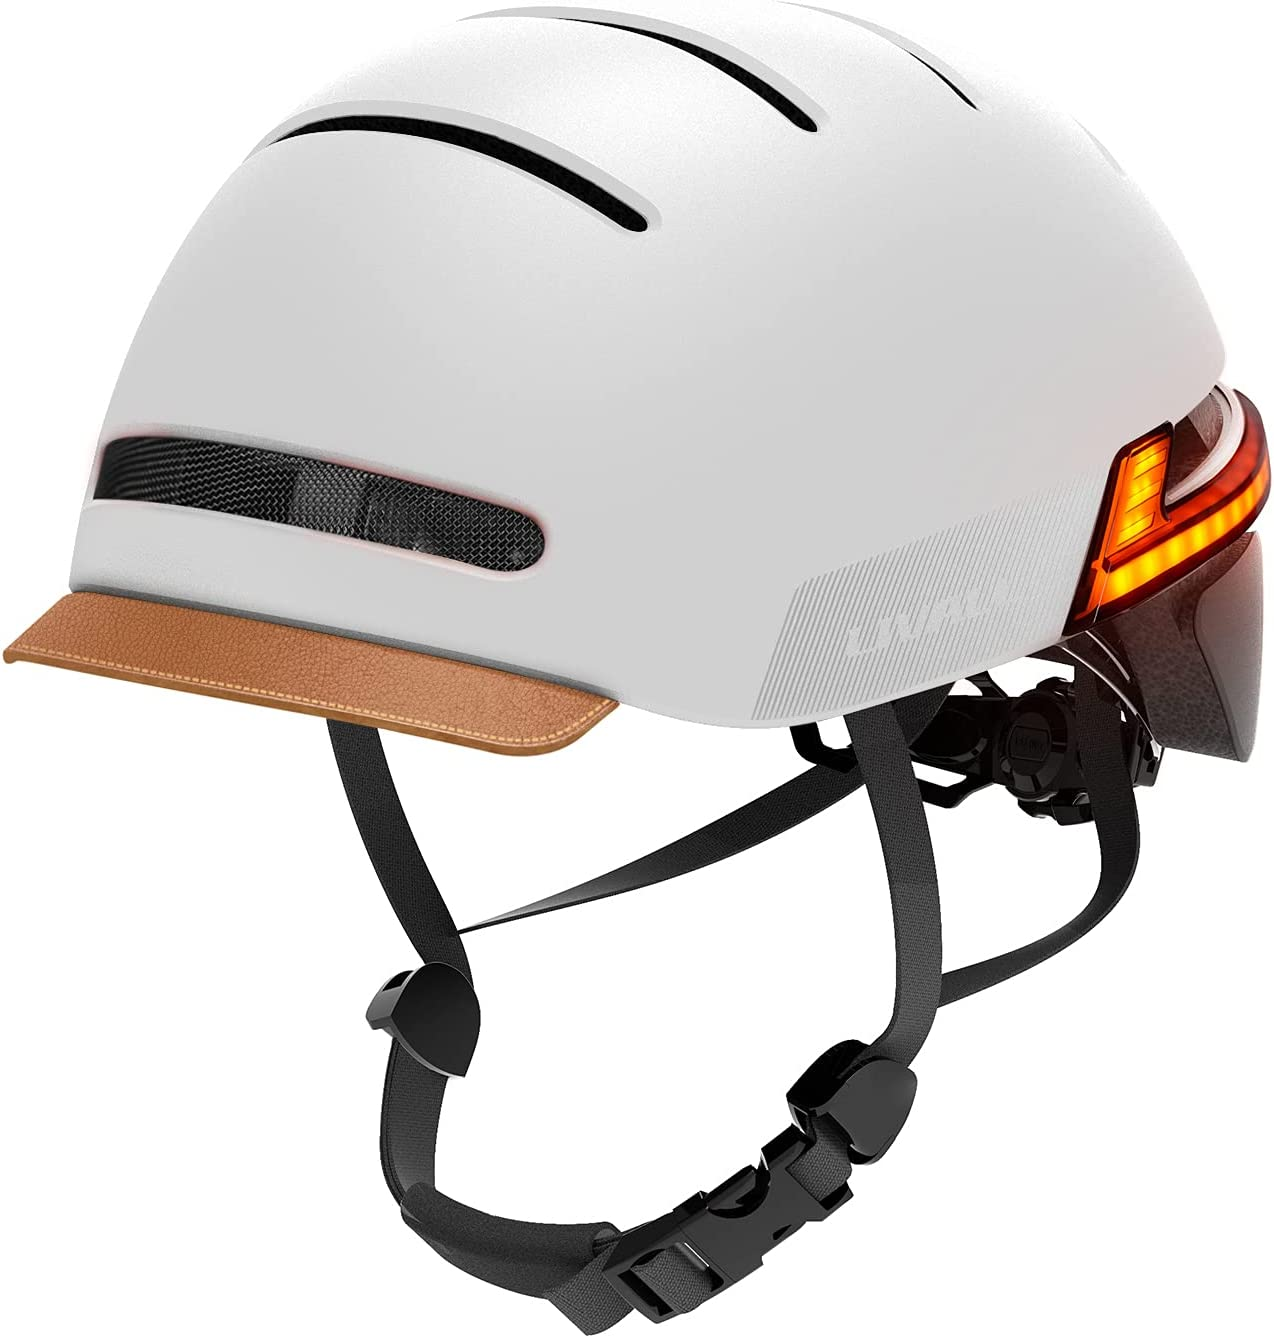 LIVALL Smart Free shipping Adult Bike Helmet with Tail Signal Limited time for free shipping Turn Re Lights